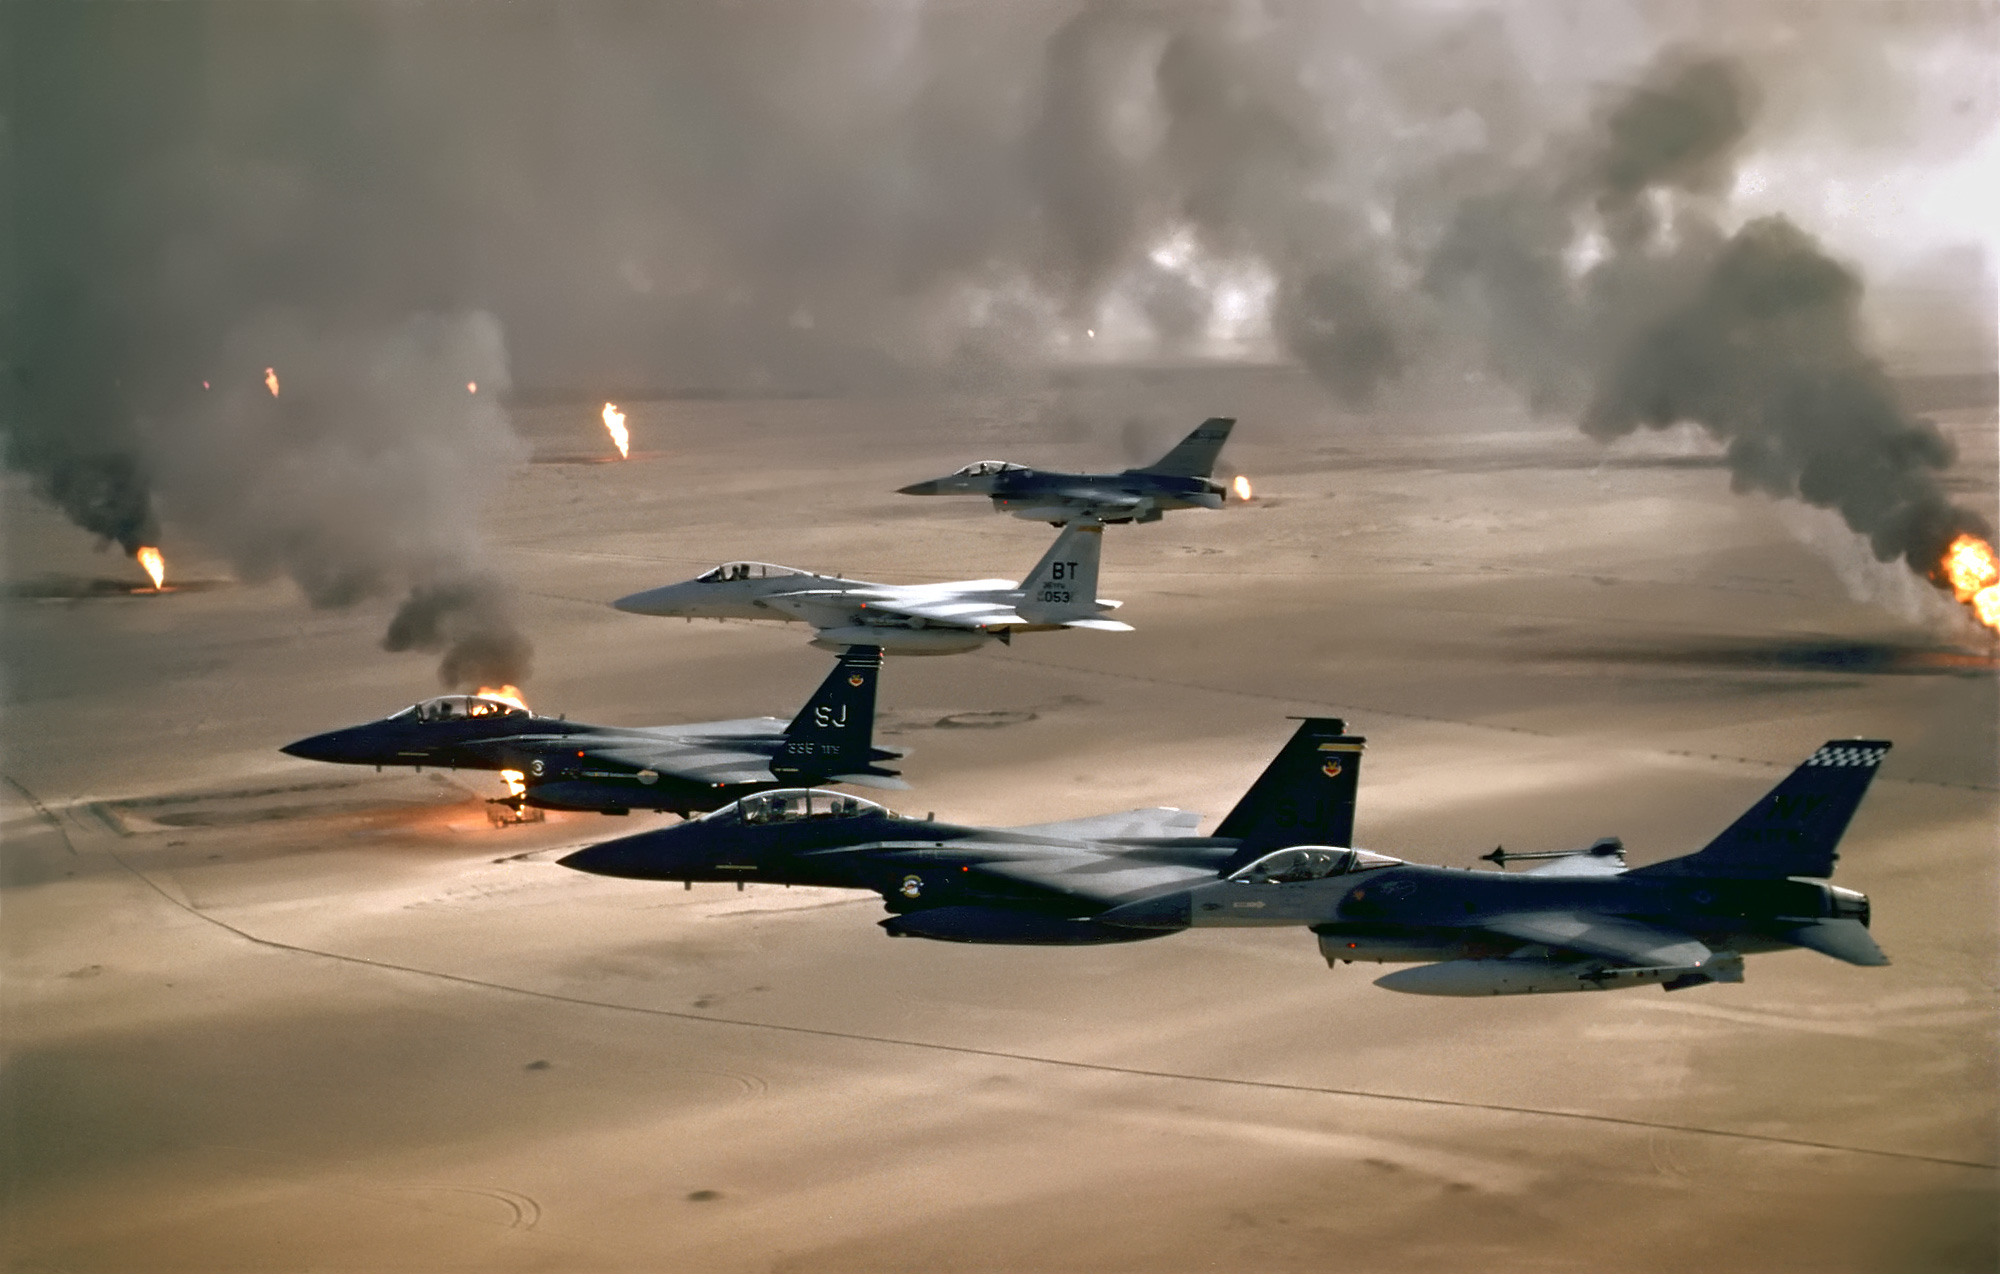 Desert Storm anniversary remembered. What are your stories?